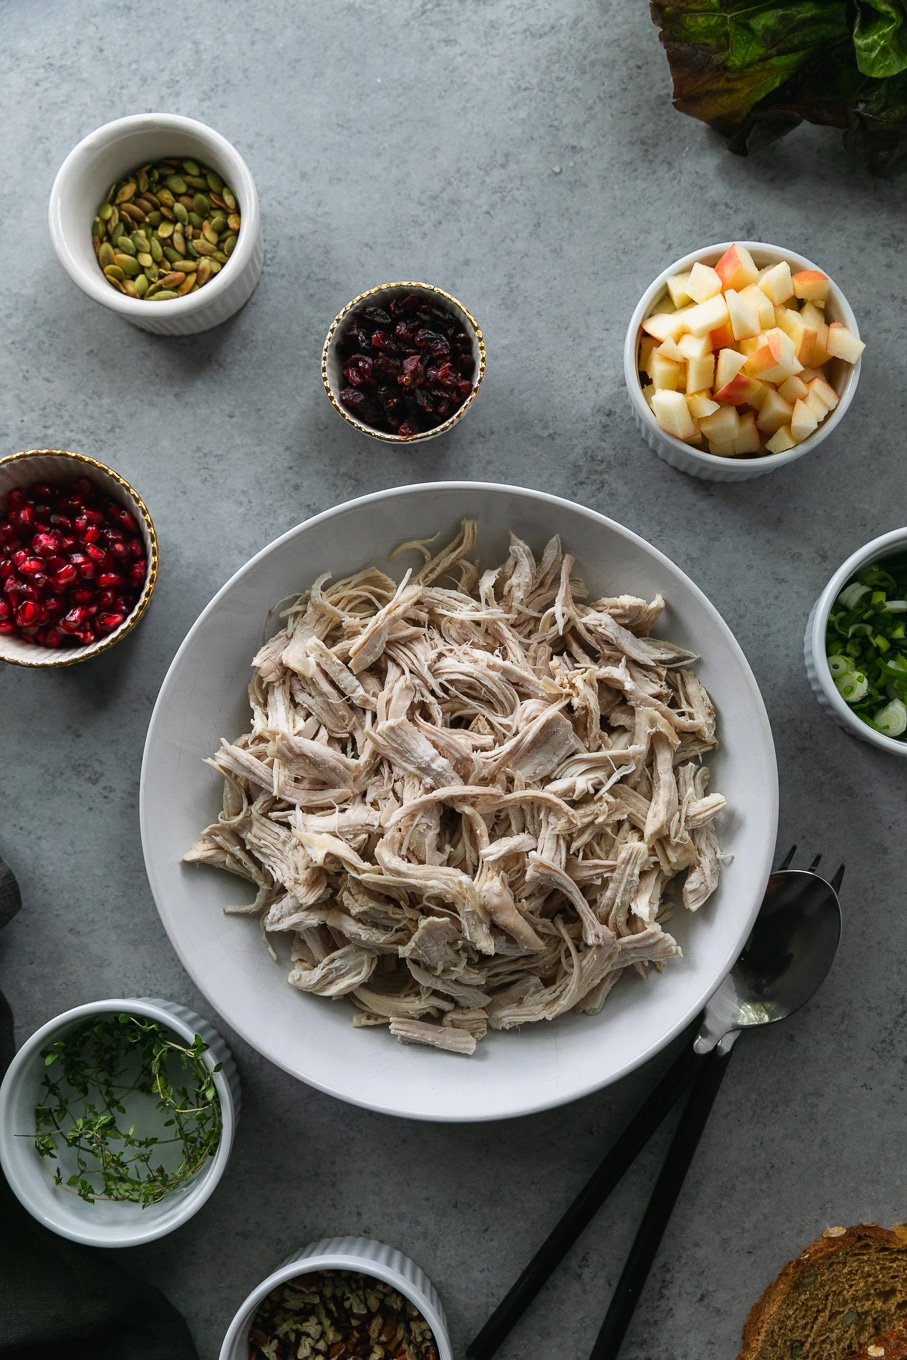 Overhead shot of a bowl of shredded chicken surrounded by bowls of chopped apples, pomegranate arils, dried cranberries, toasted pepitas, thyme, and scallions on a grey background